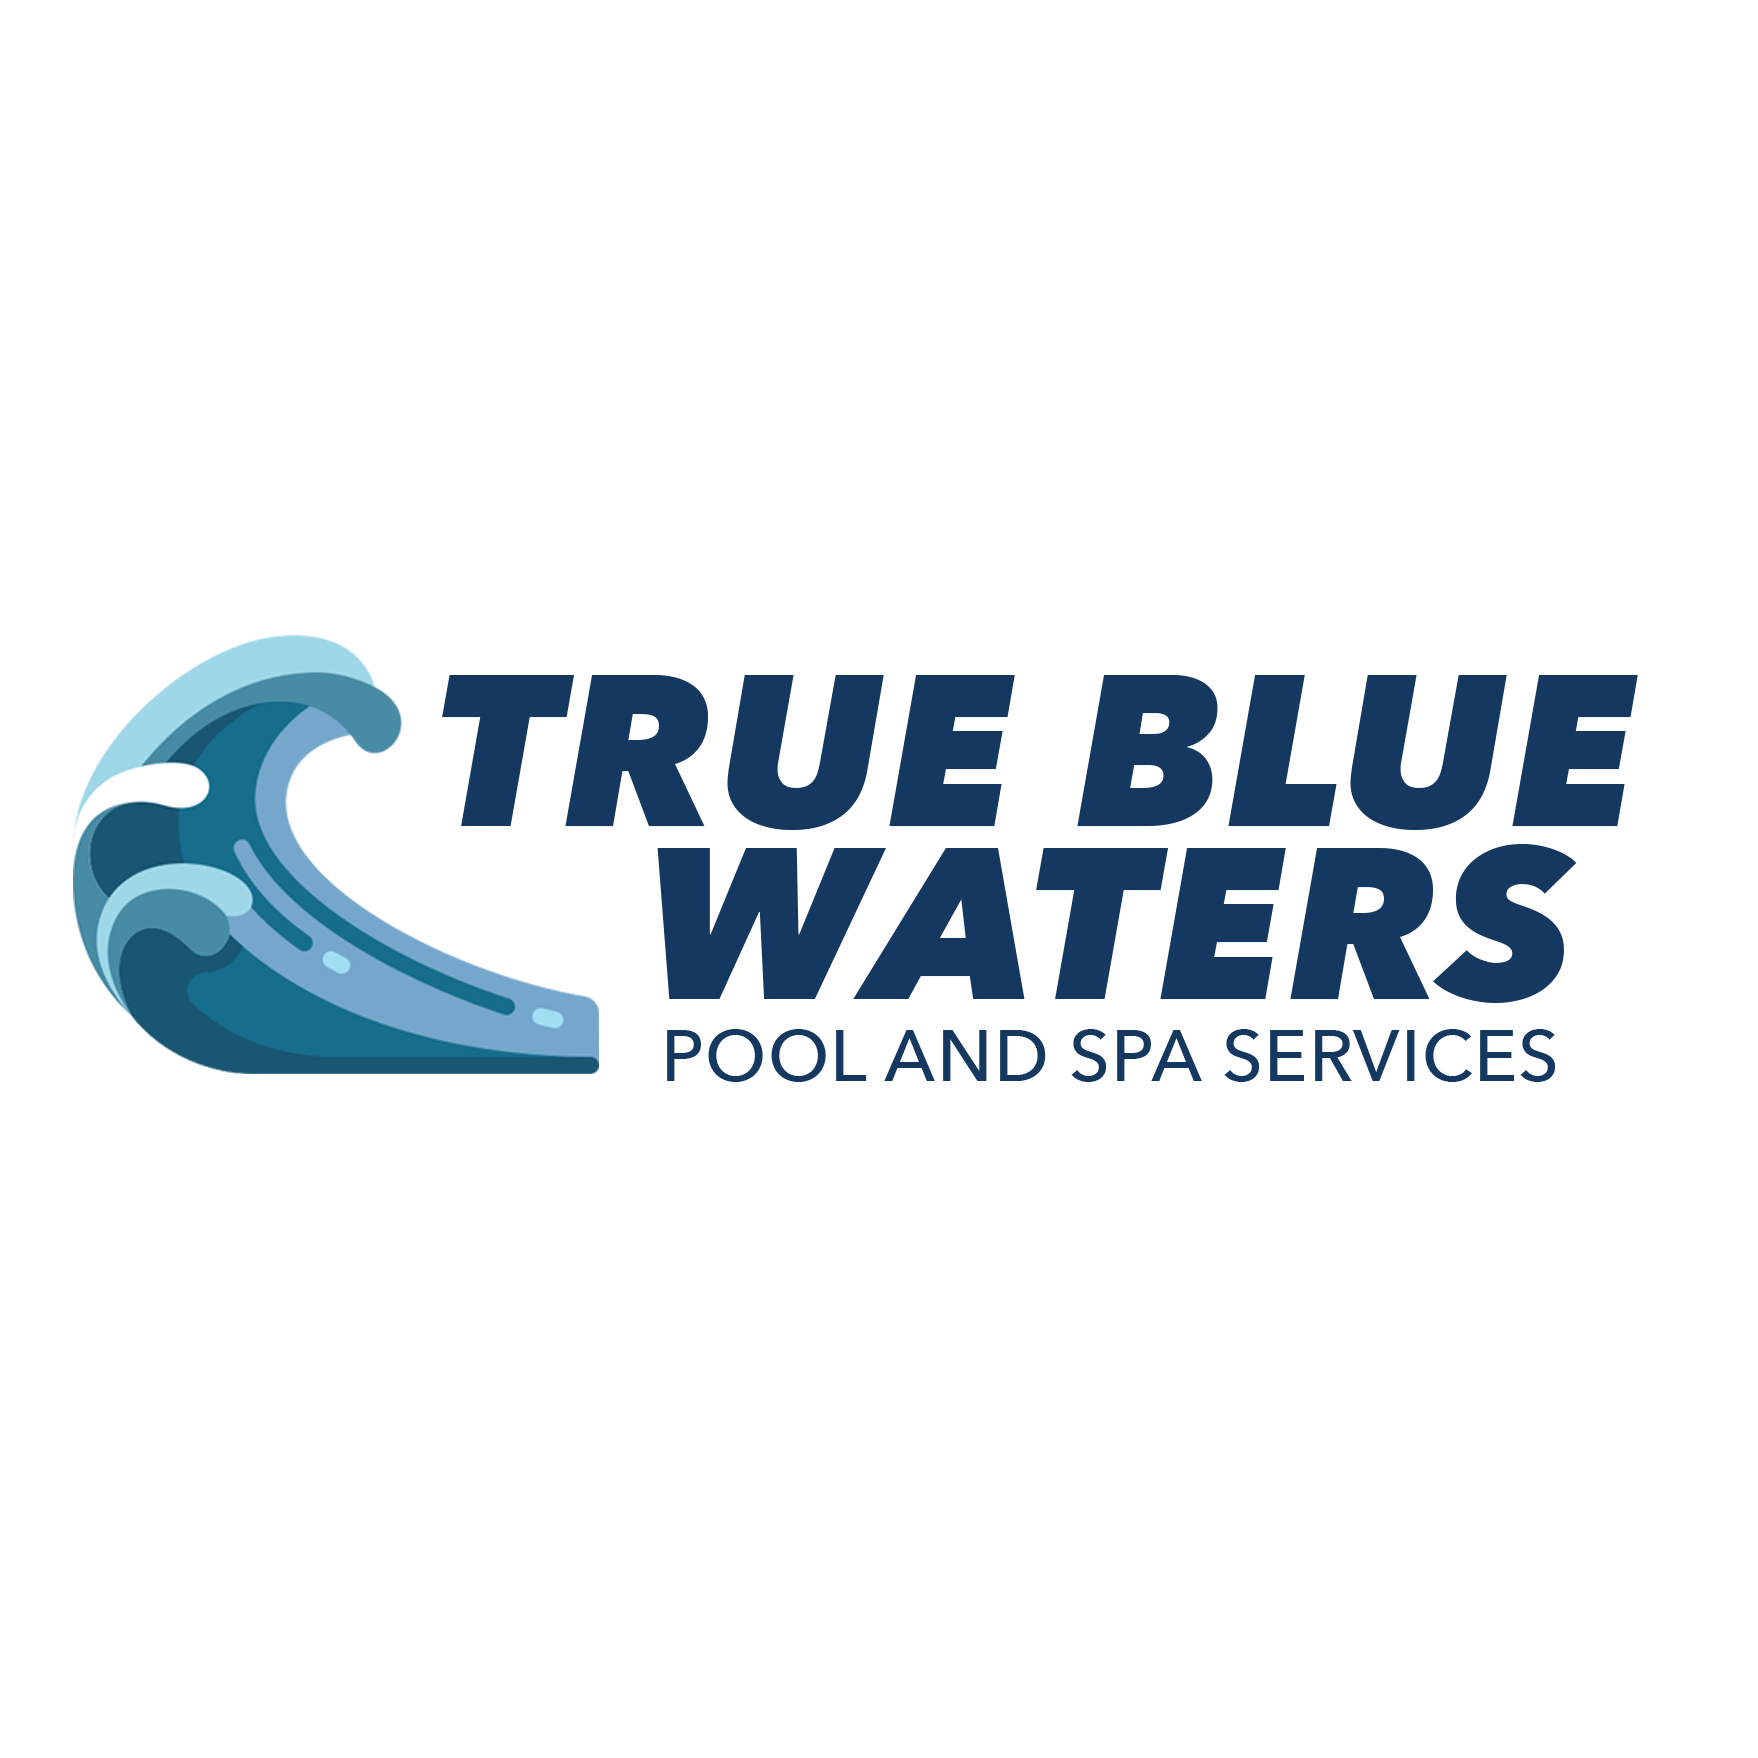 True Blue Waters - Holden, MA 01520 - (774)696-4657 | ShowMeLocal.com